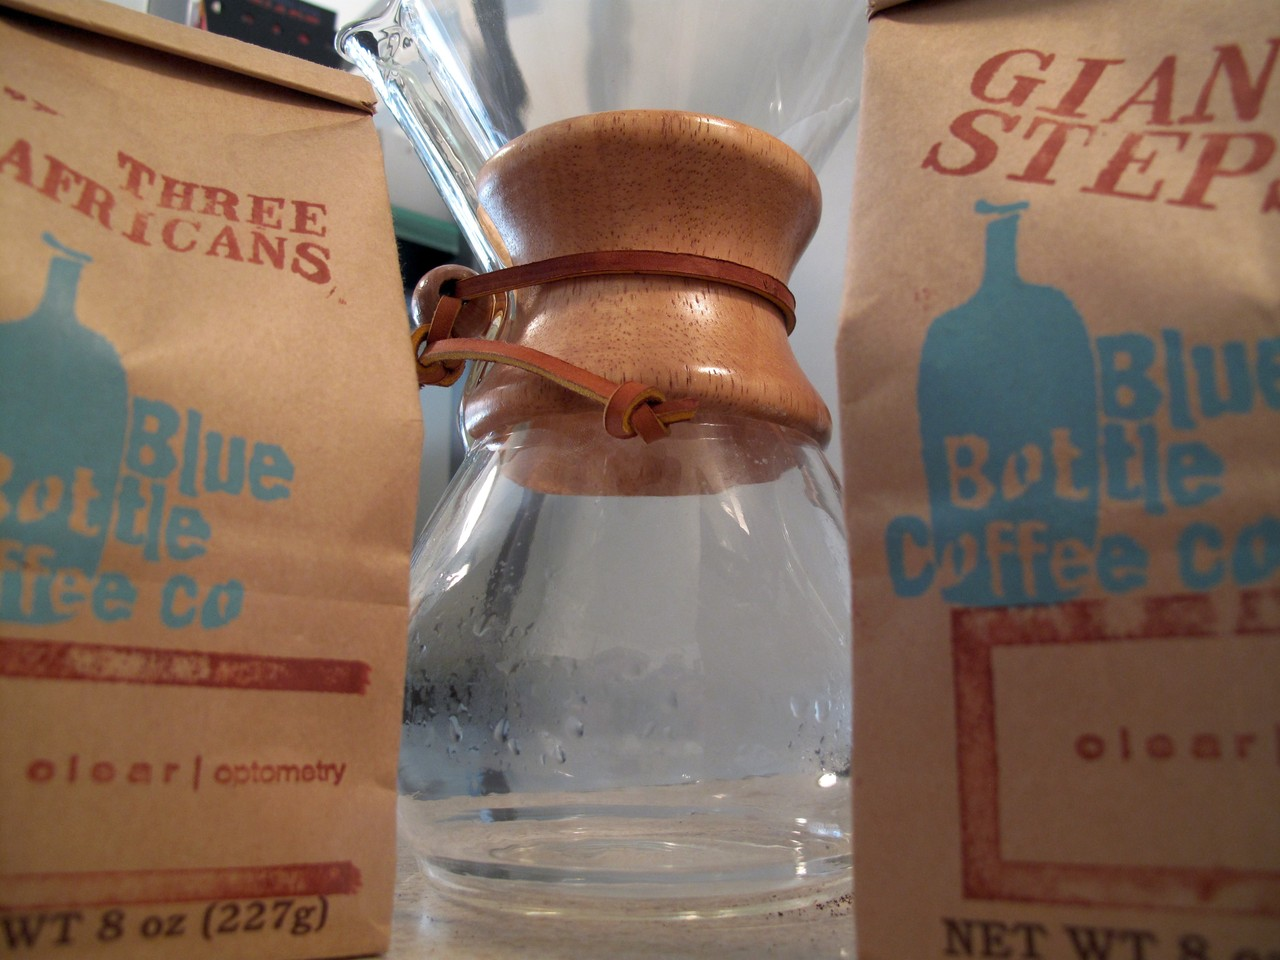 The real Chemex experiment Blue Bottle beans - Three Africans & Giant Steps. Respect.